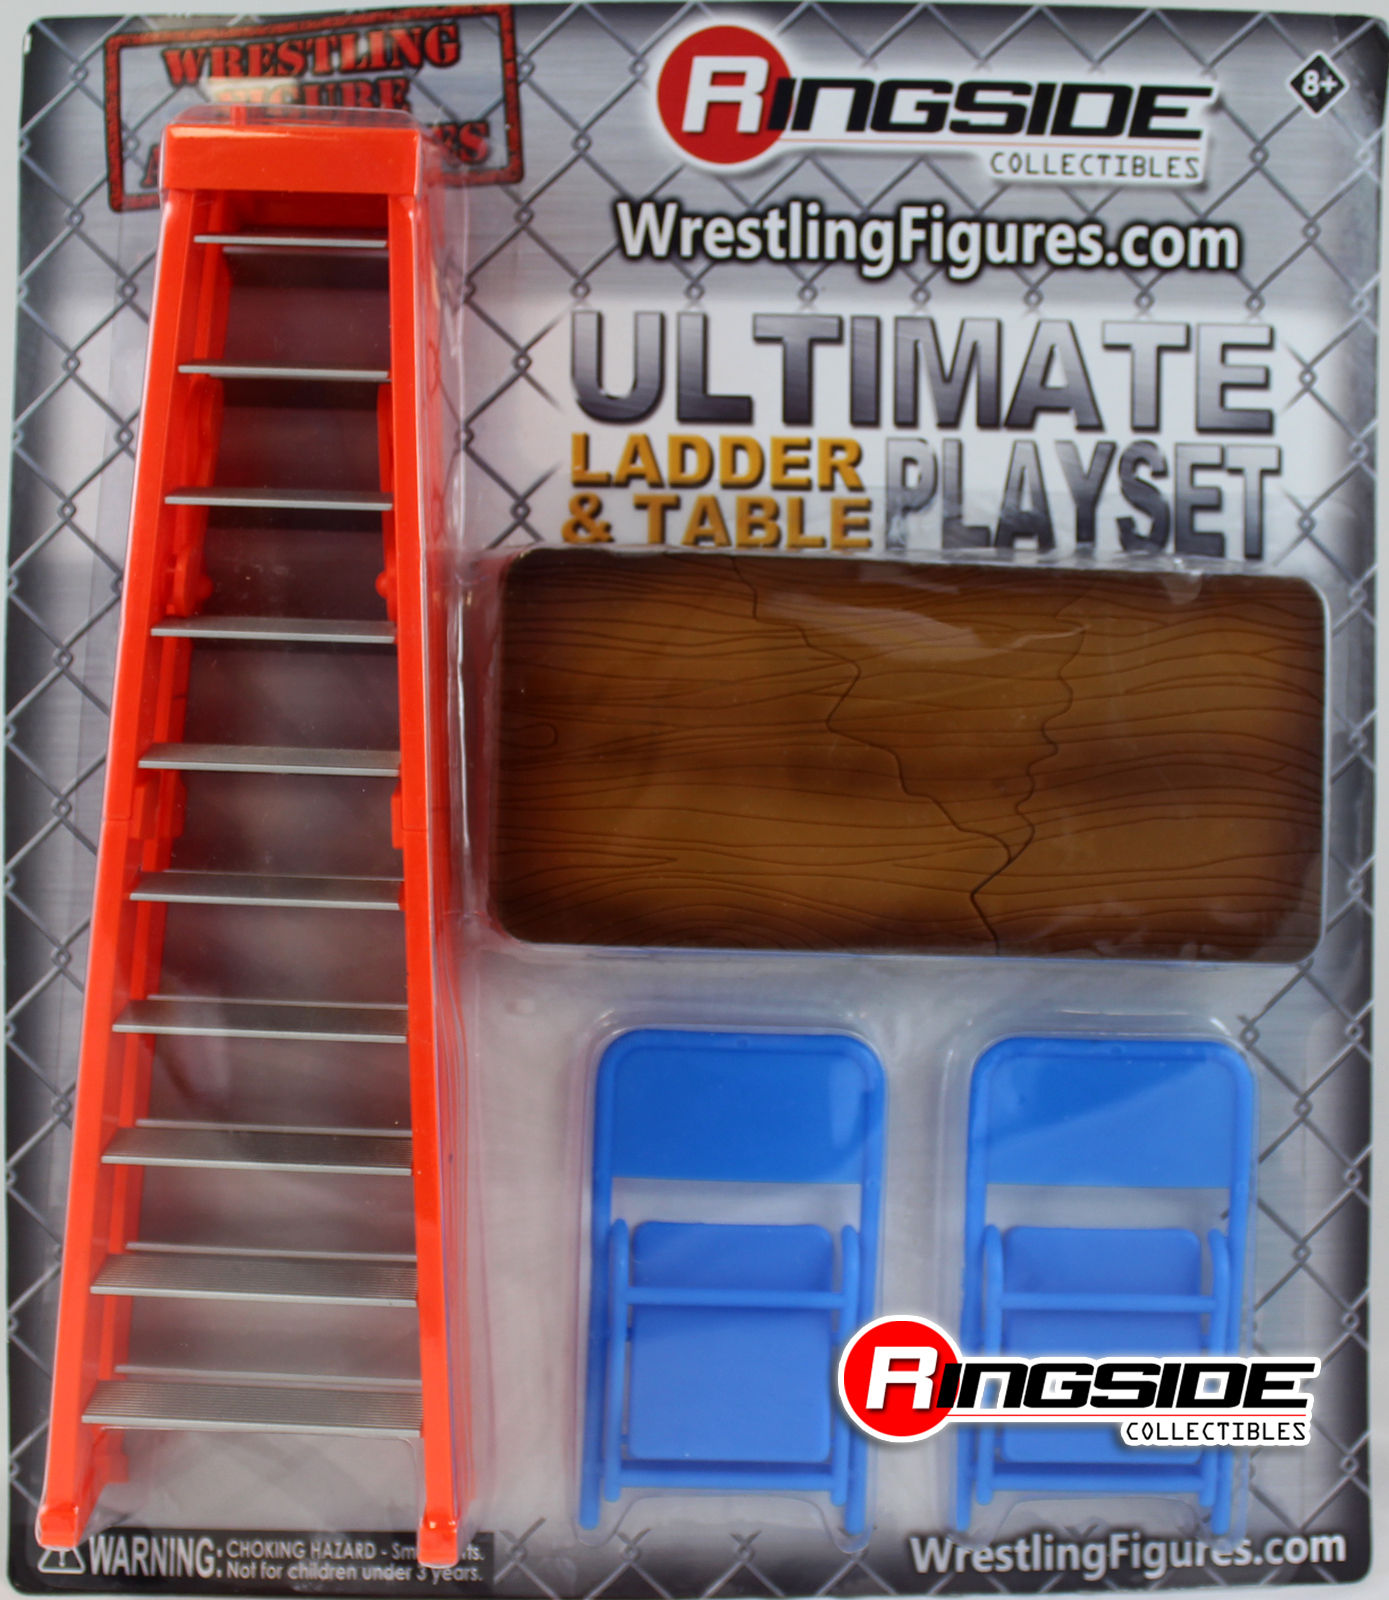 wrestling chairs for sale helinox ground chair wwe ultimate ladder and table play set orange ringside